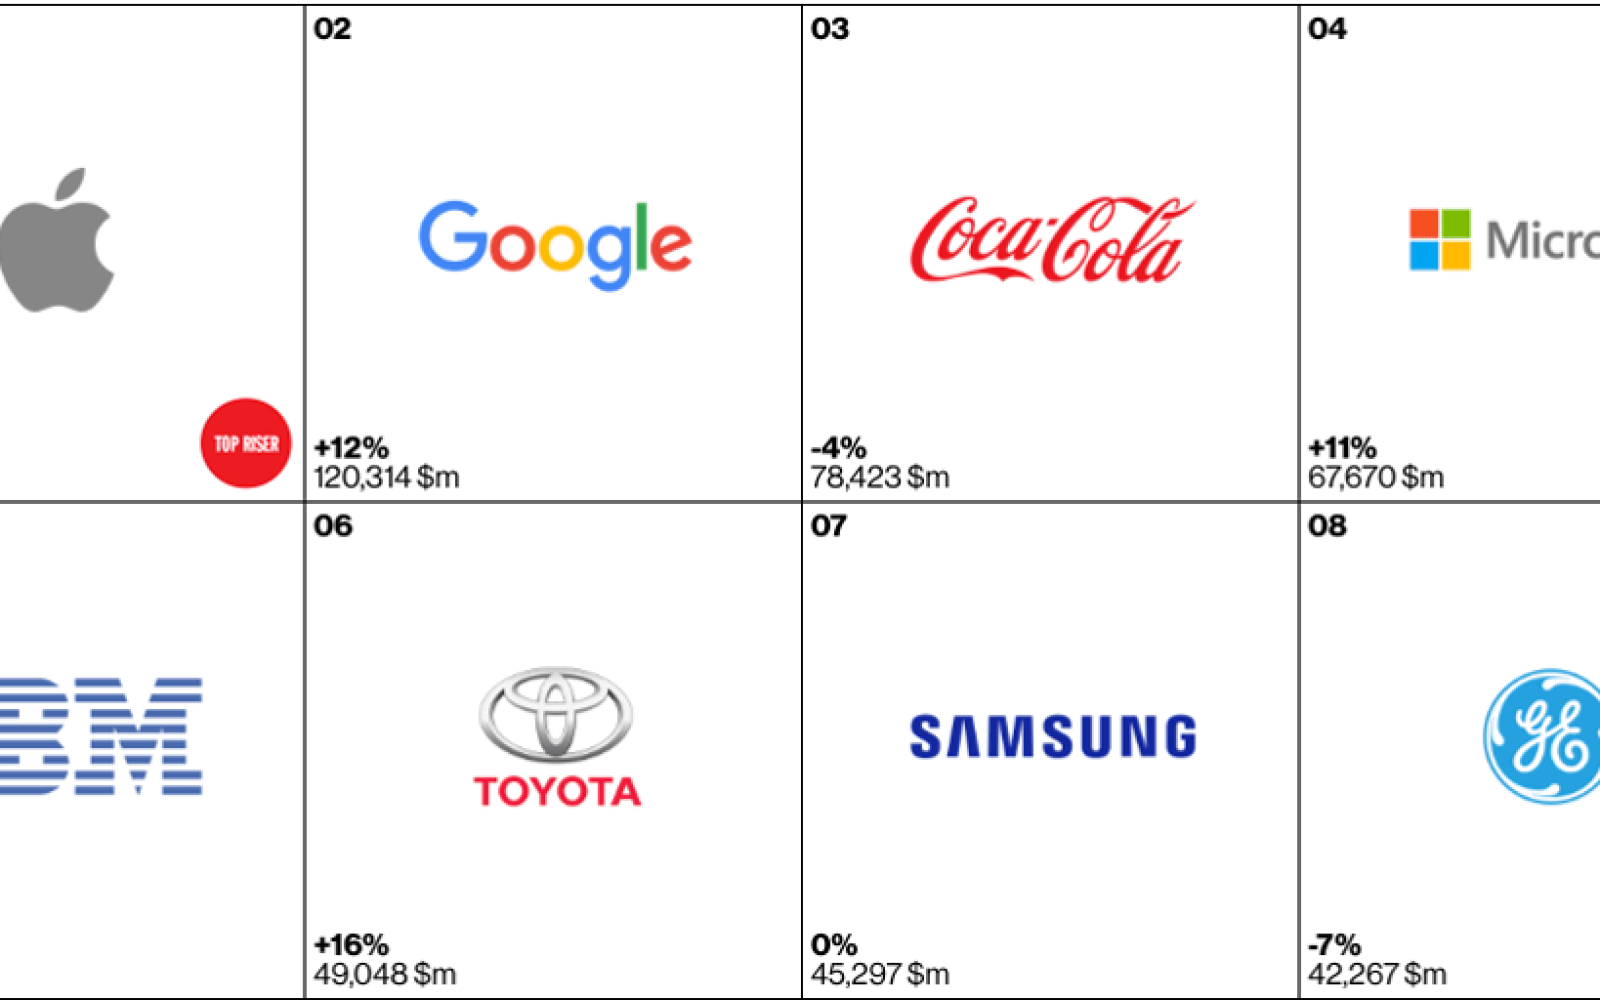 Apple tops Interbrand's list of the world's most valuable brands for 3rd consecutive year